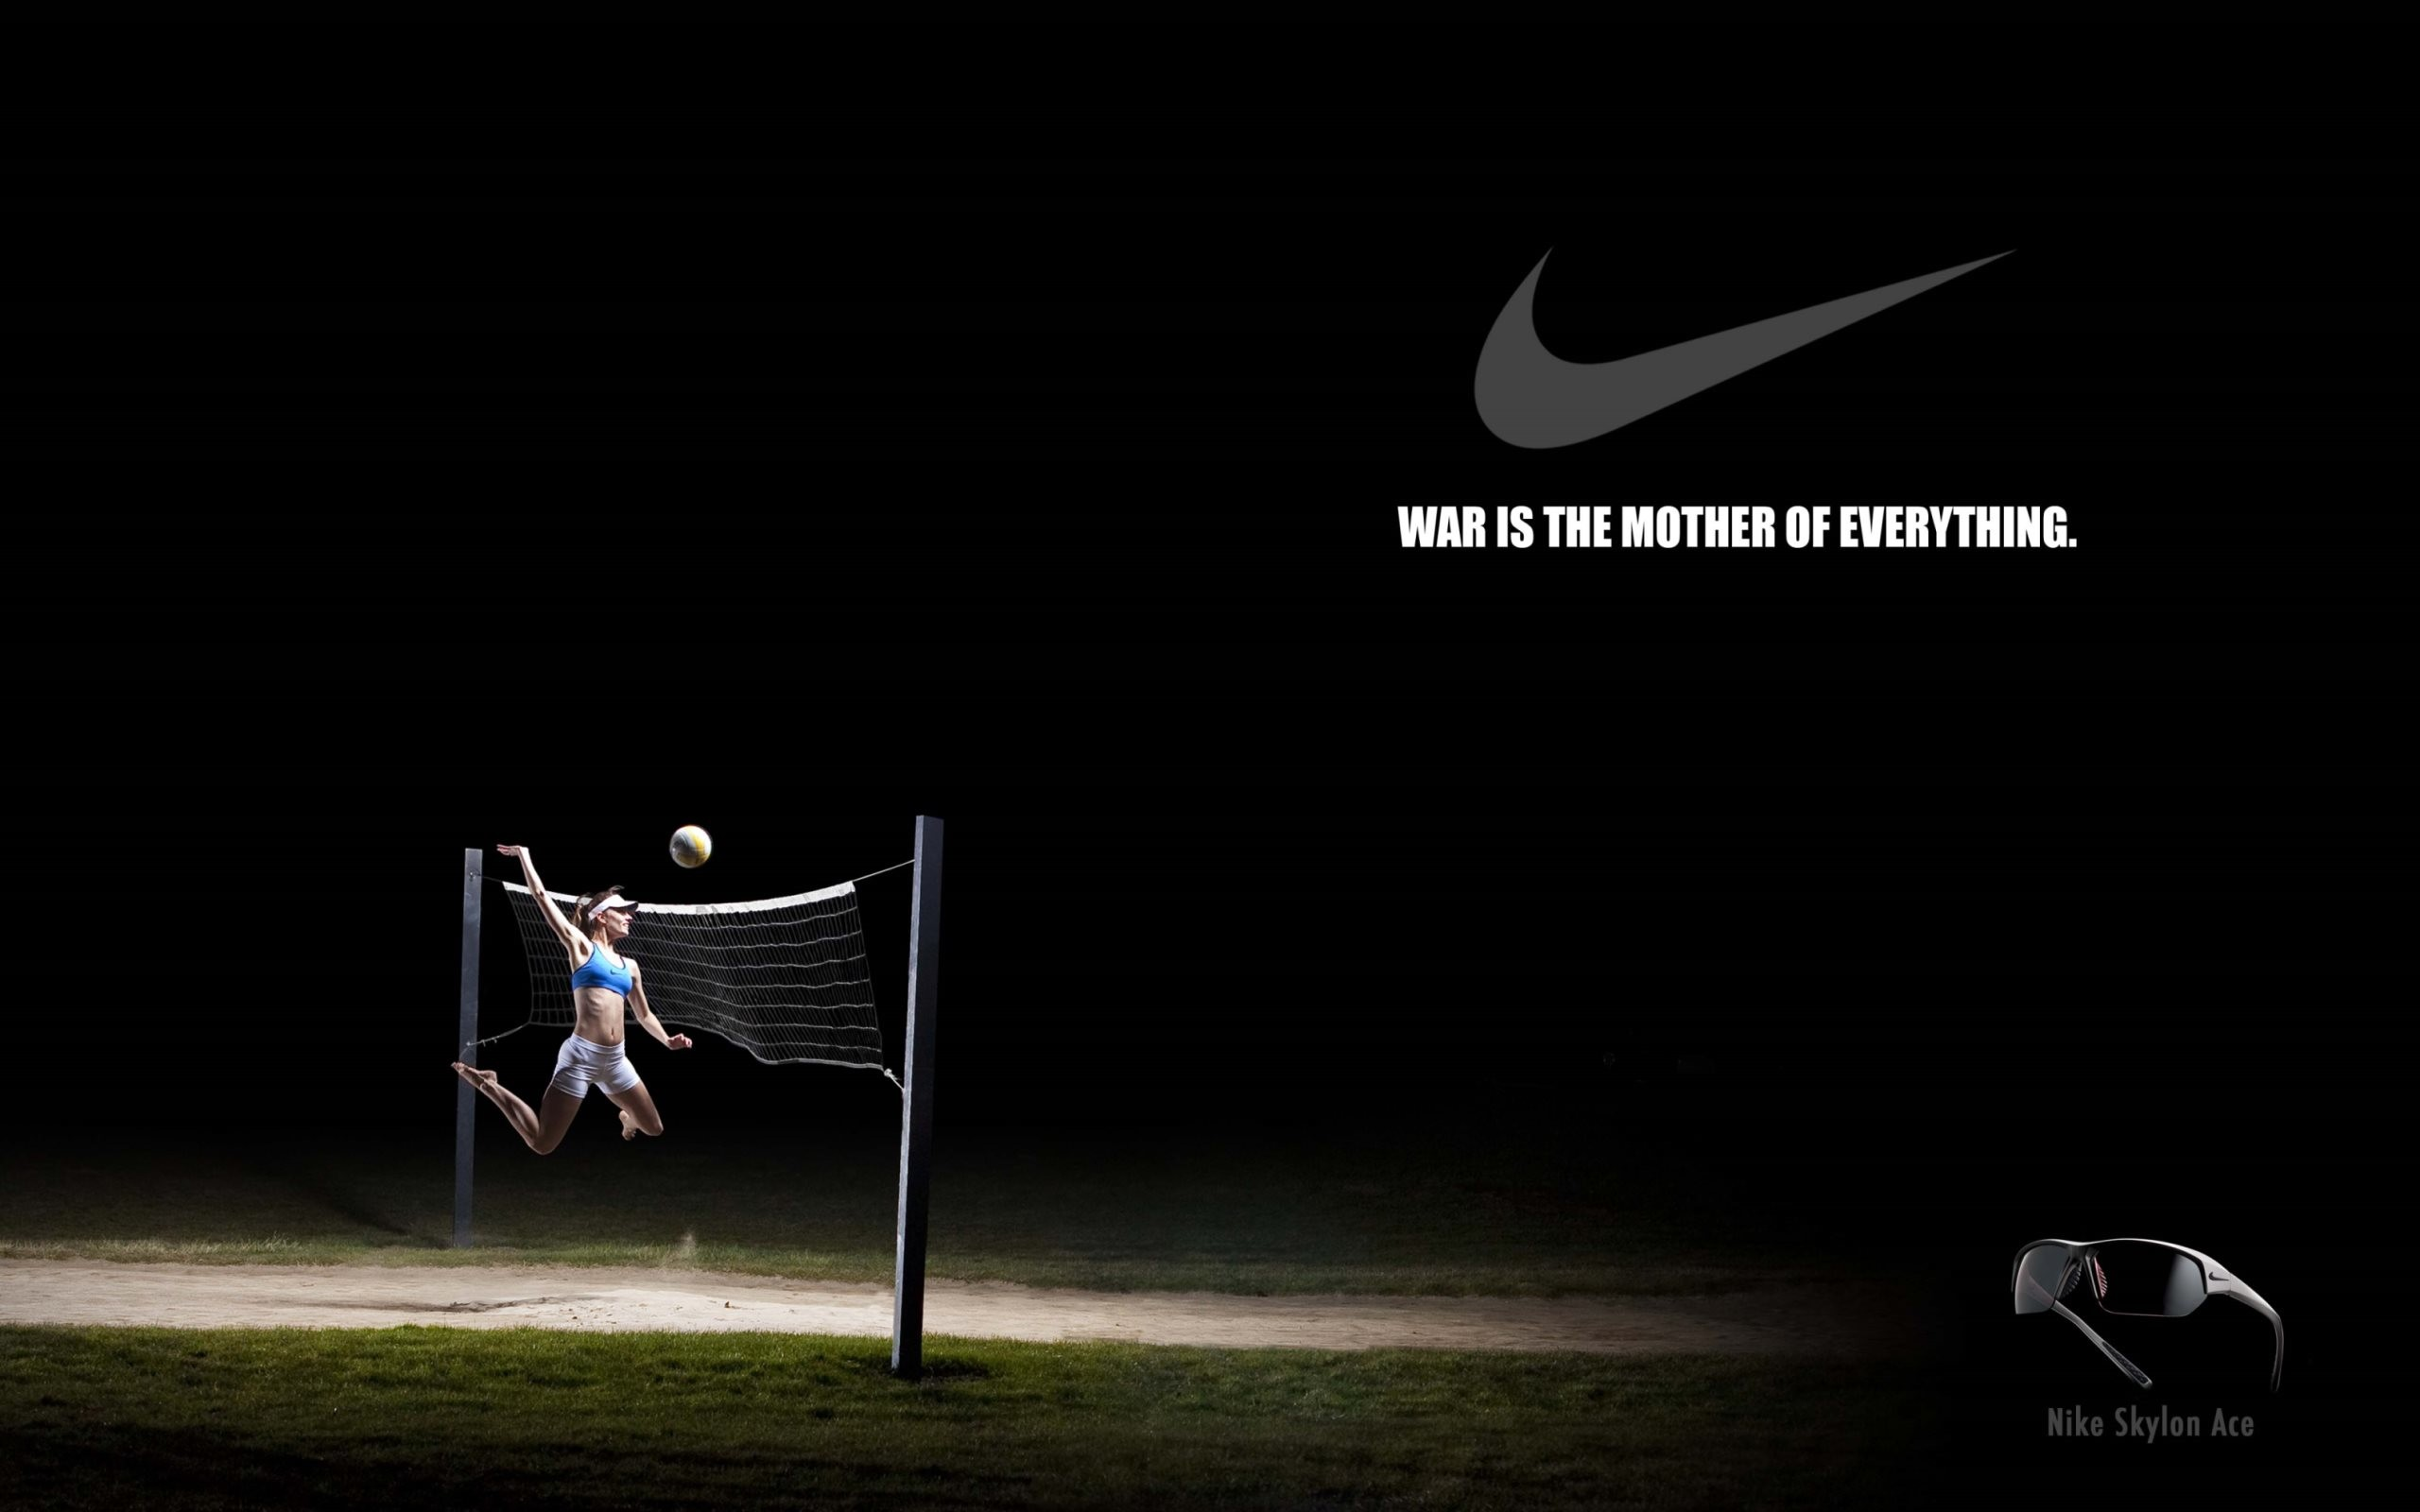 2560x1600 4K HD Wallpaper: Nike Creative Volleyball Poster